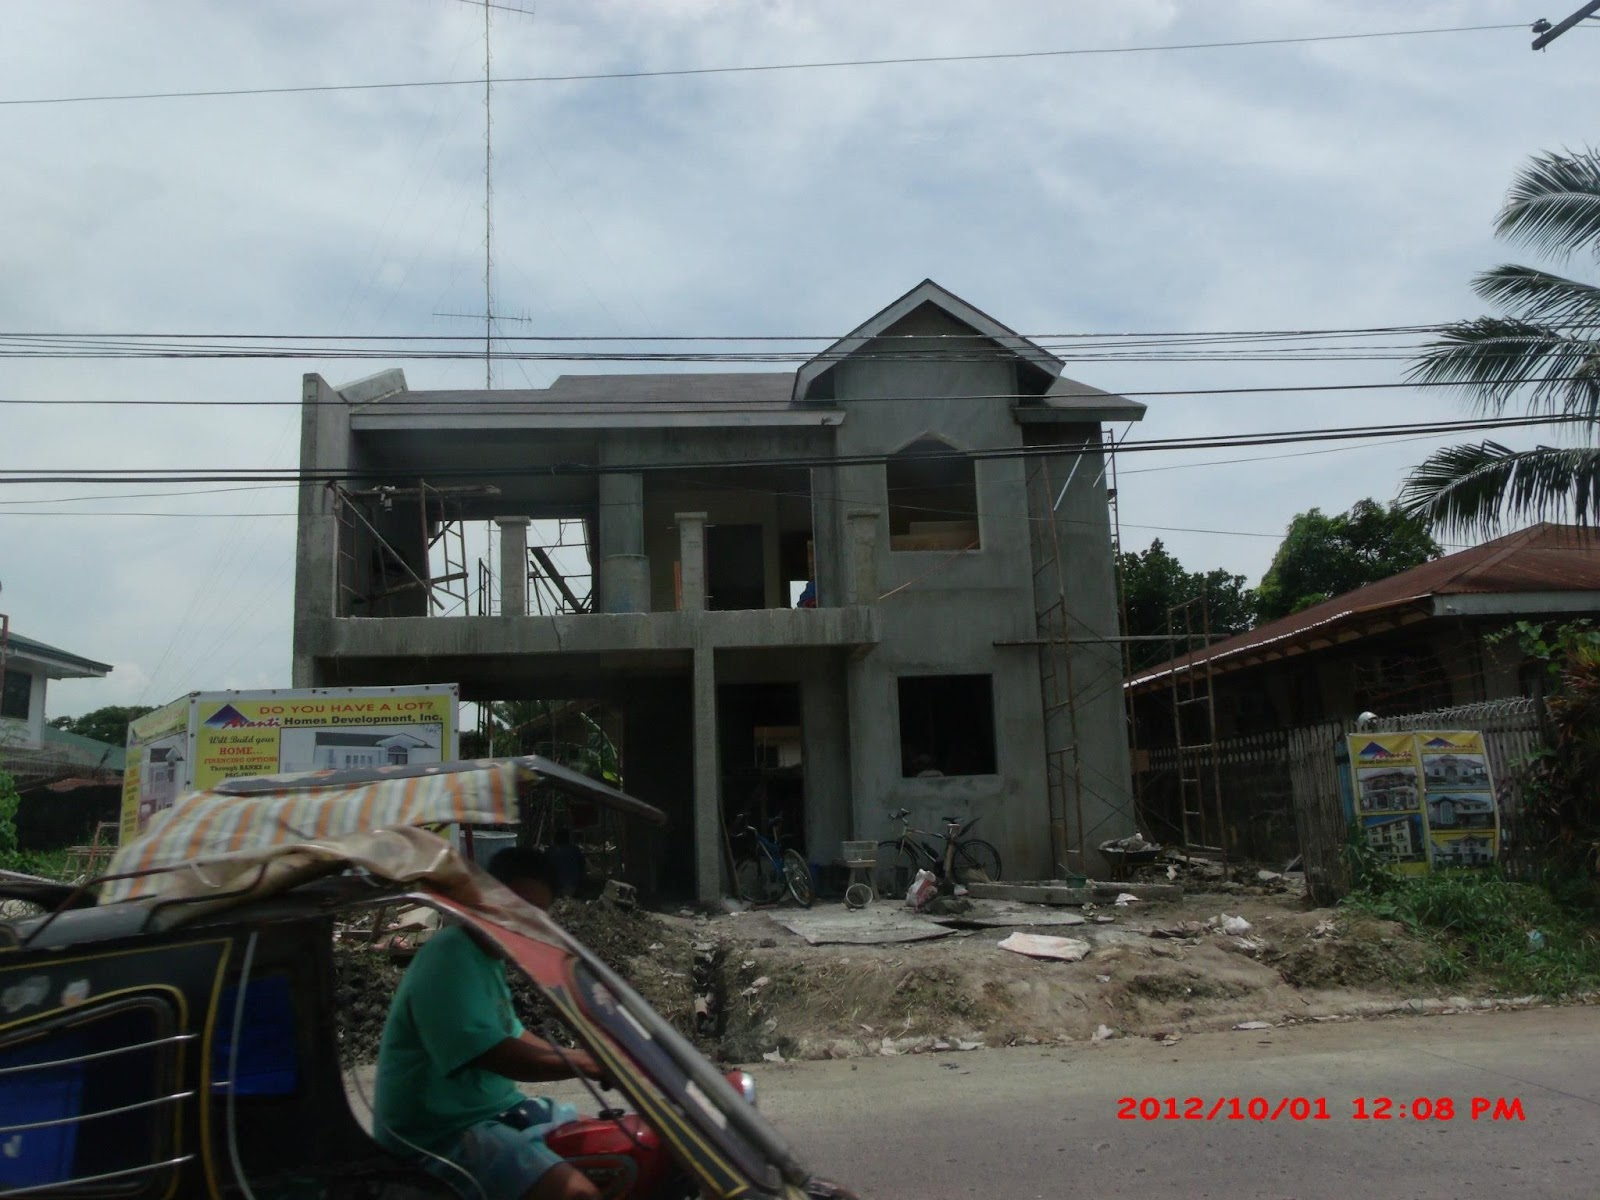 Modern contemporary house designs philippines iloilo simple 2 storey - Alta Tierra Village House Construction Project In Jaro Iloilo